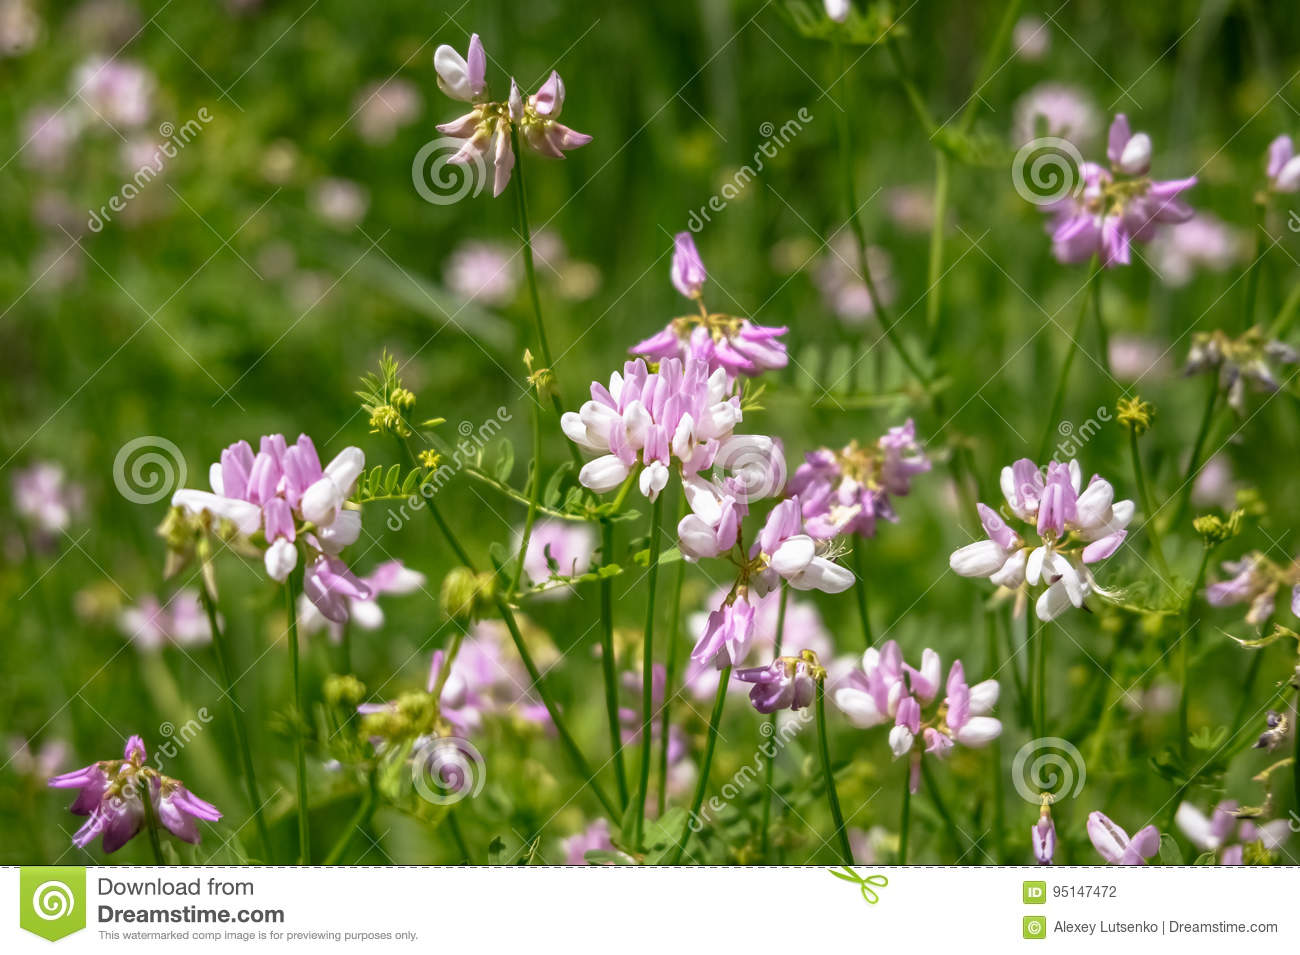 Wild pink flowers in green grass stock photo image of natural download comp mightylinksfo